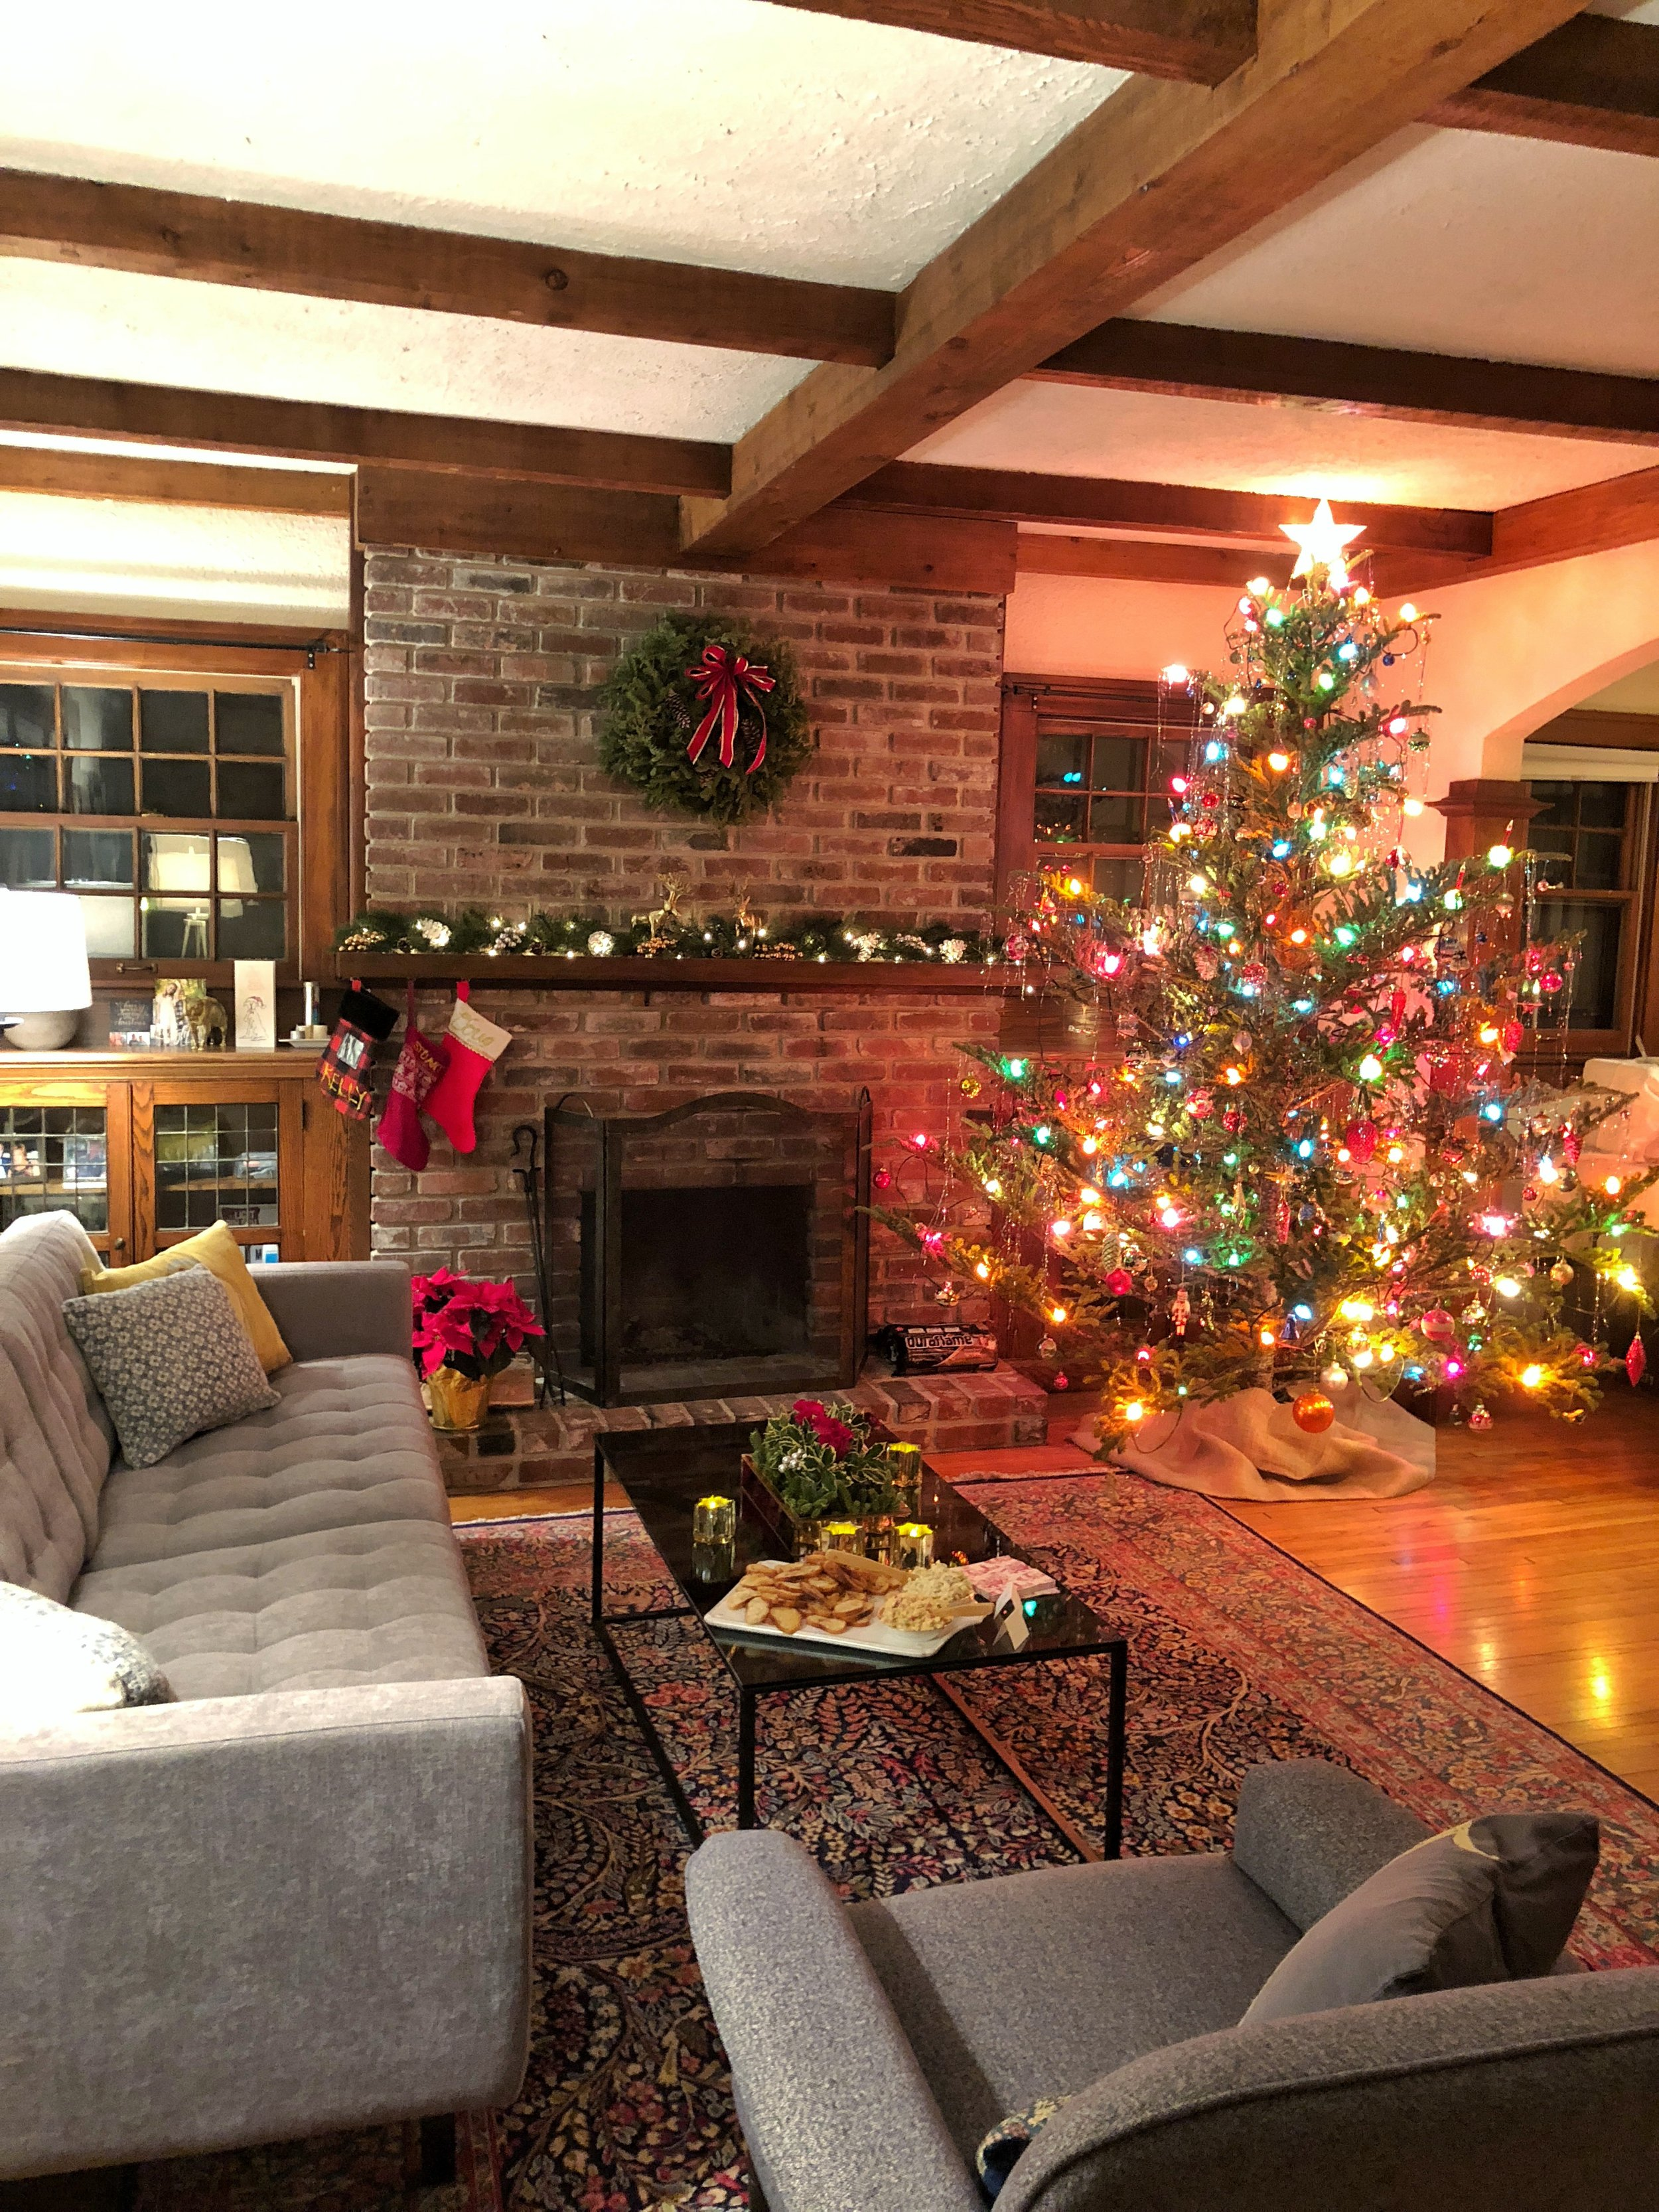 Our Holiday Party in 2017 in our new home in Linden Hills/Minneapolis, Minnesota.